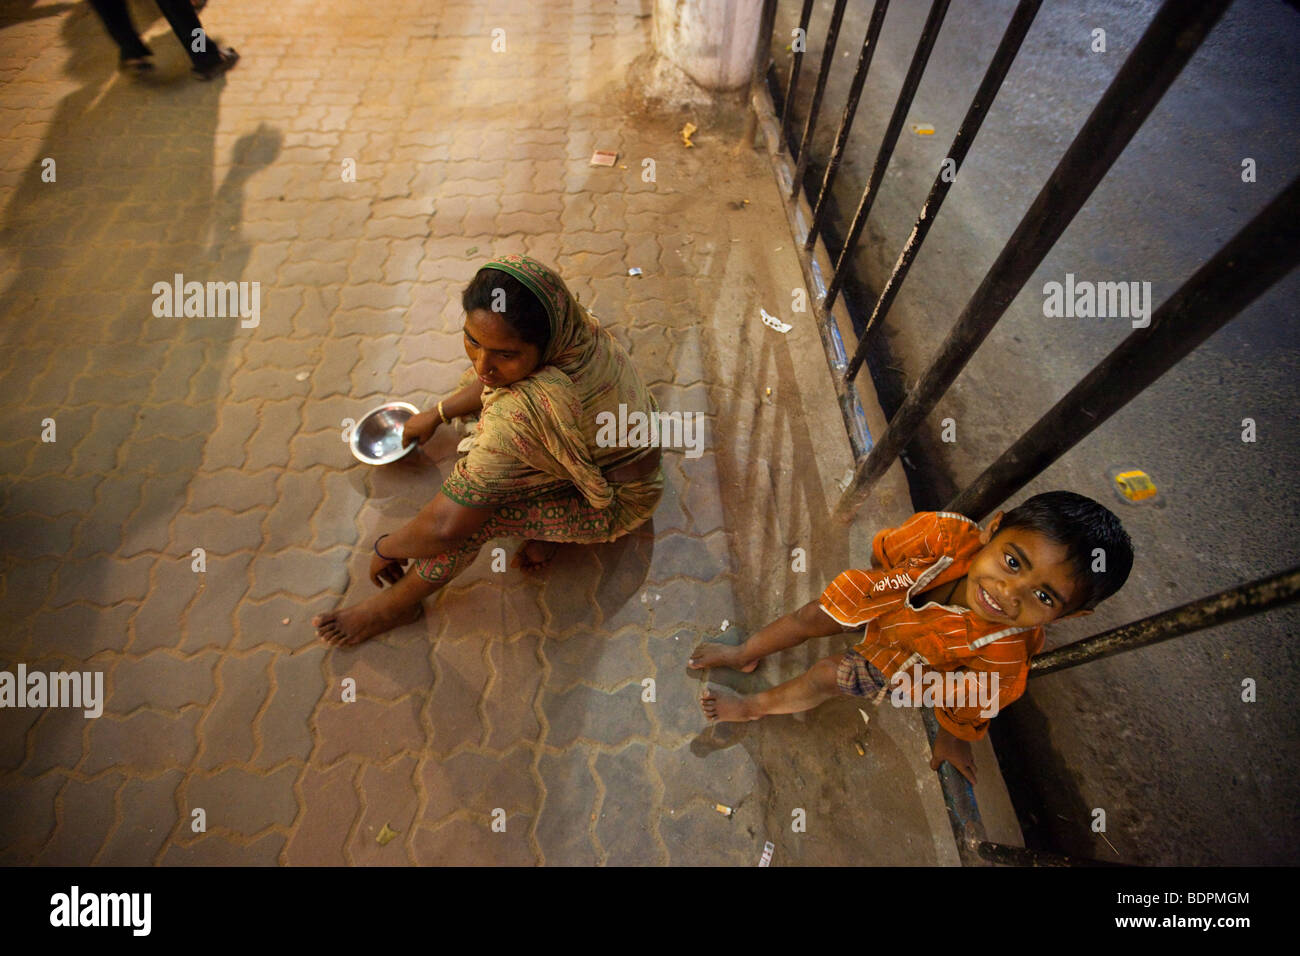 Homeless Mother and Boy Begging on the Street in Calcutta India Stock Photo